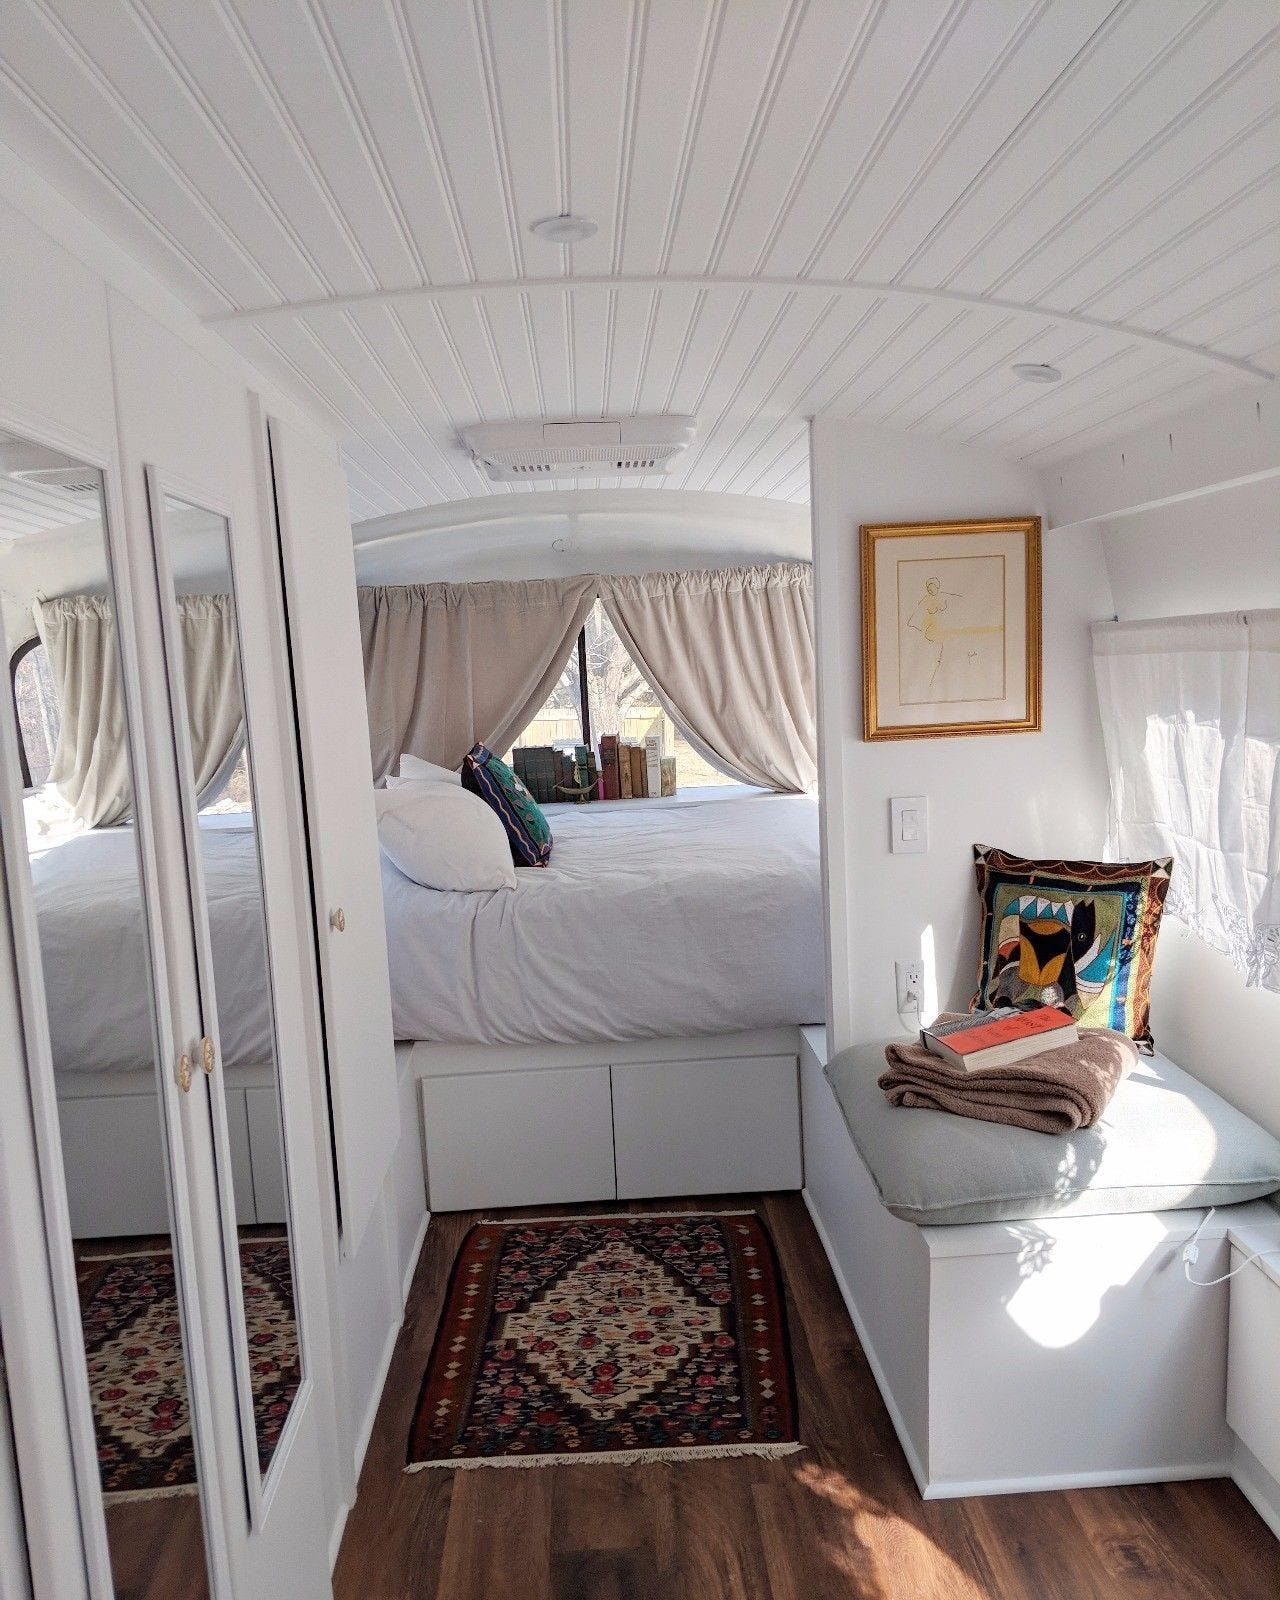 Photo of I Spent $125,000 To Turn A Bus Into My Home — Here's What It Looks Like Inside